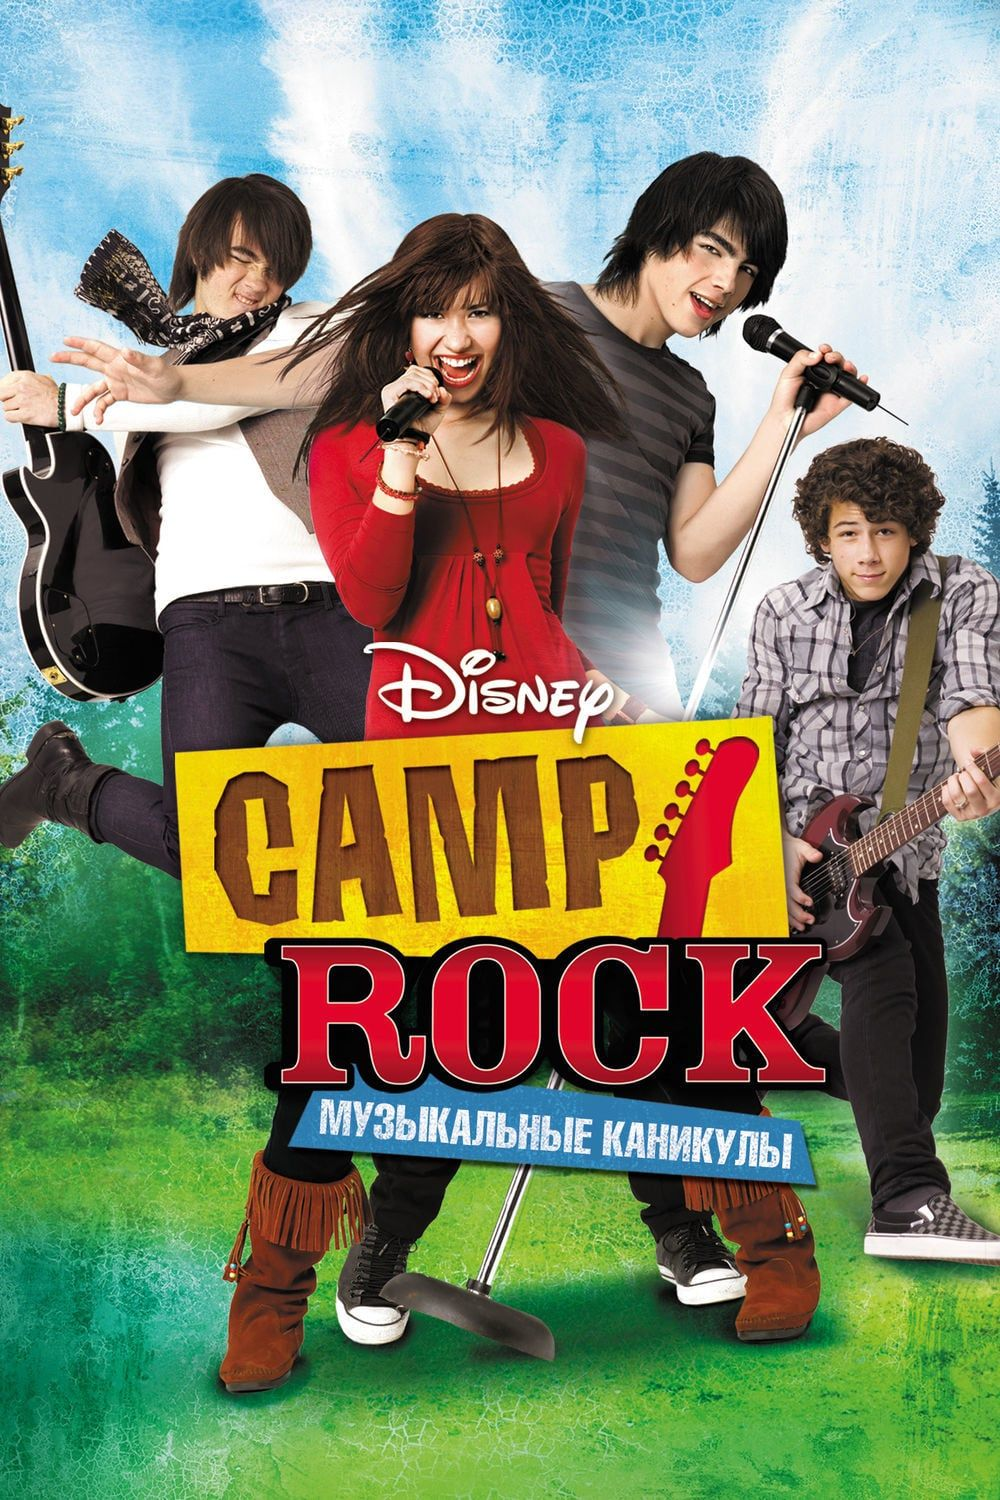 Ver Camp Rock 2008 Pelicula Completa Online En Español Latino Subtitulado Camp Rock Disney Channel Movies Disney Camping